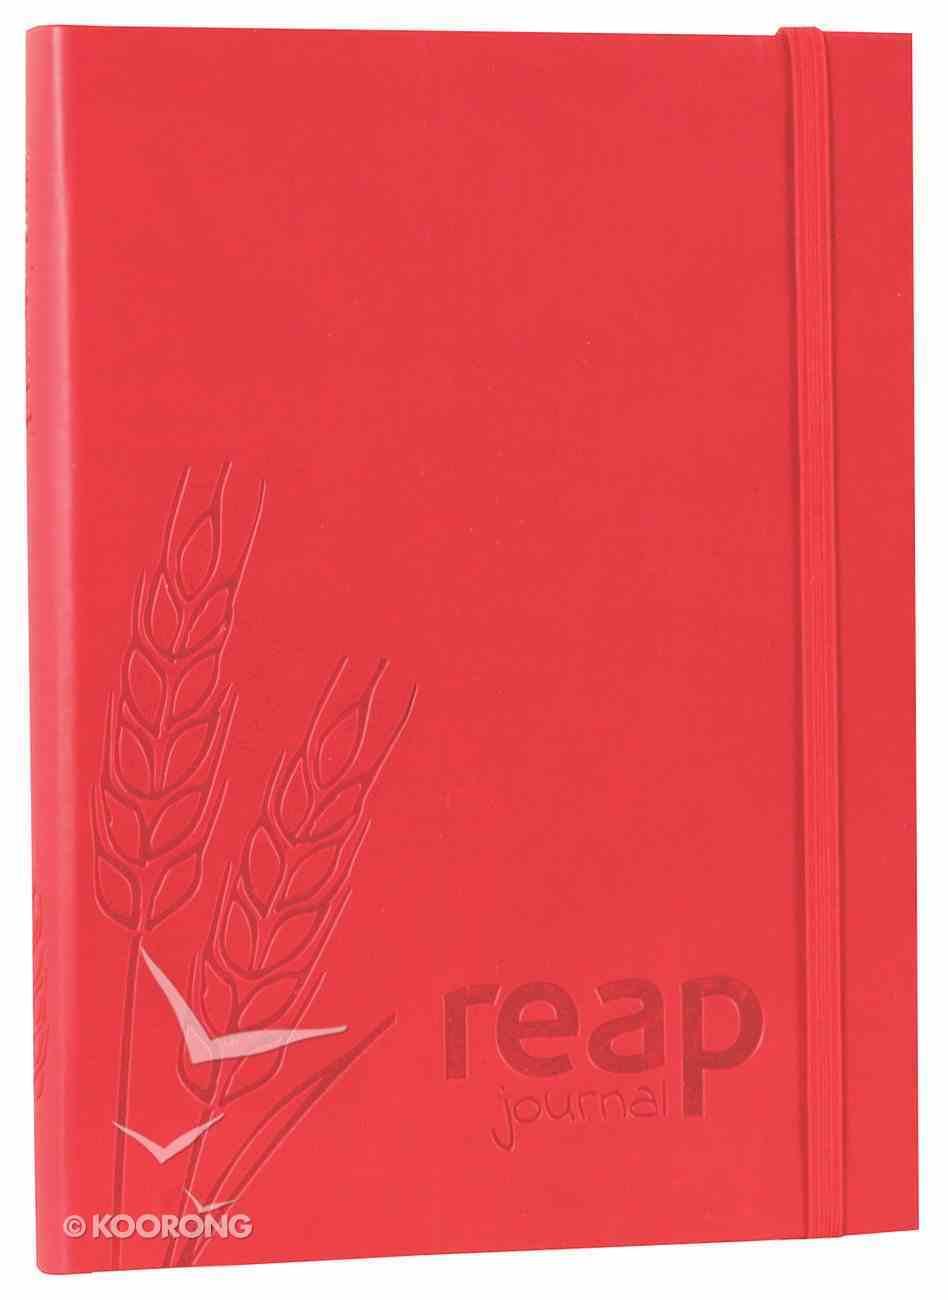 Reap Journal Youth Edition Imitation Leather